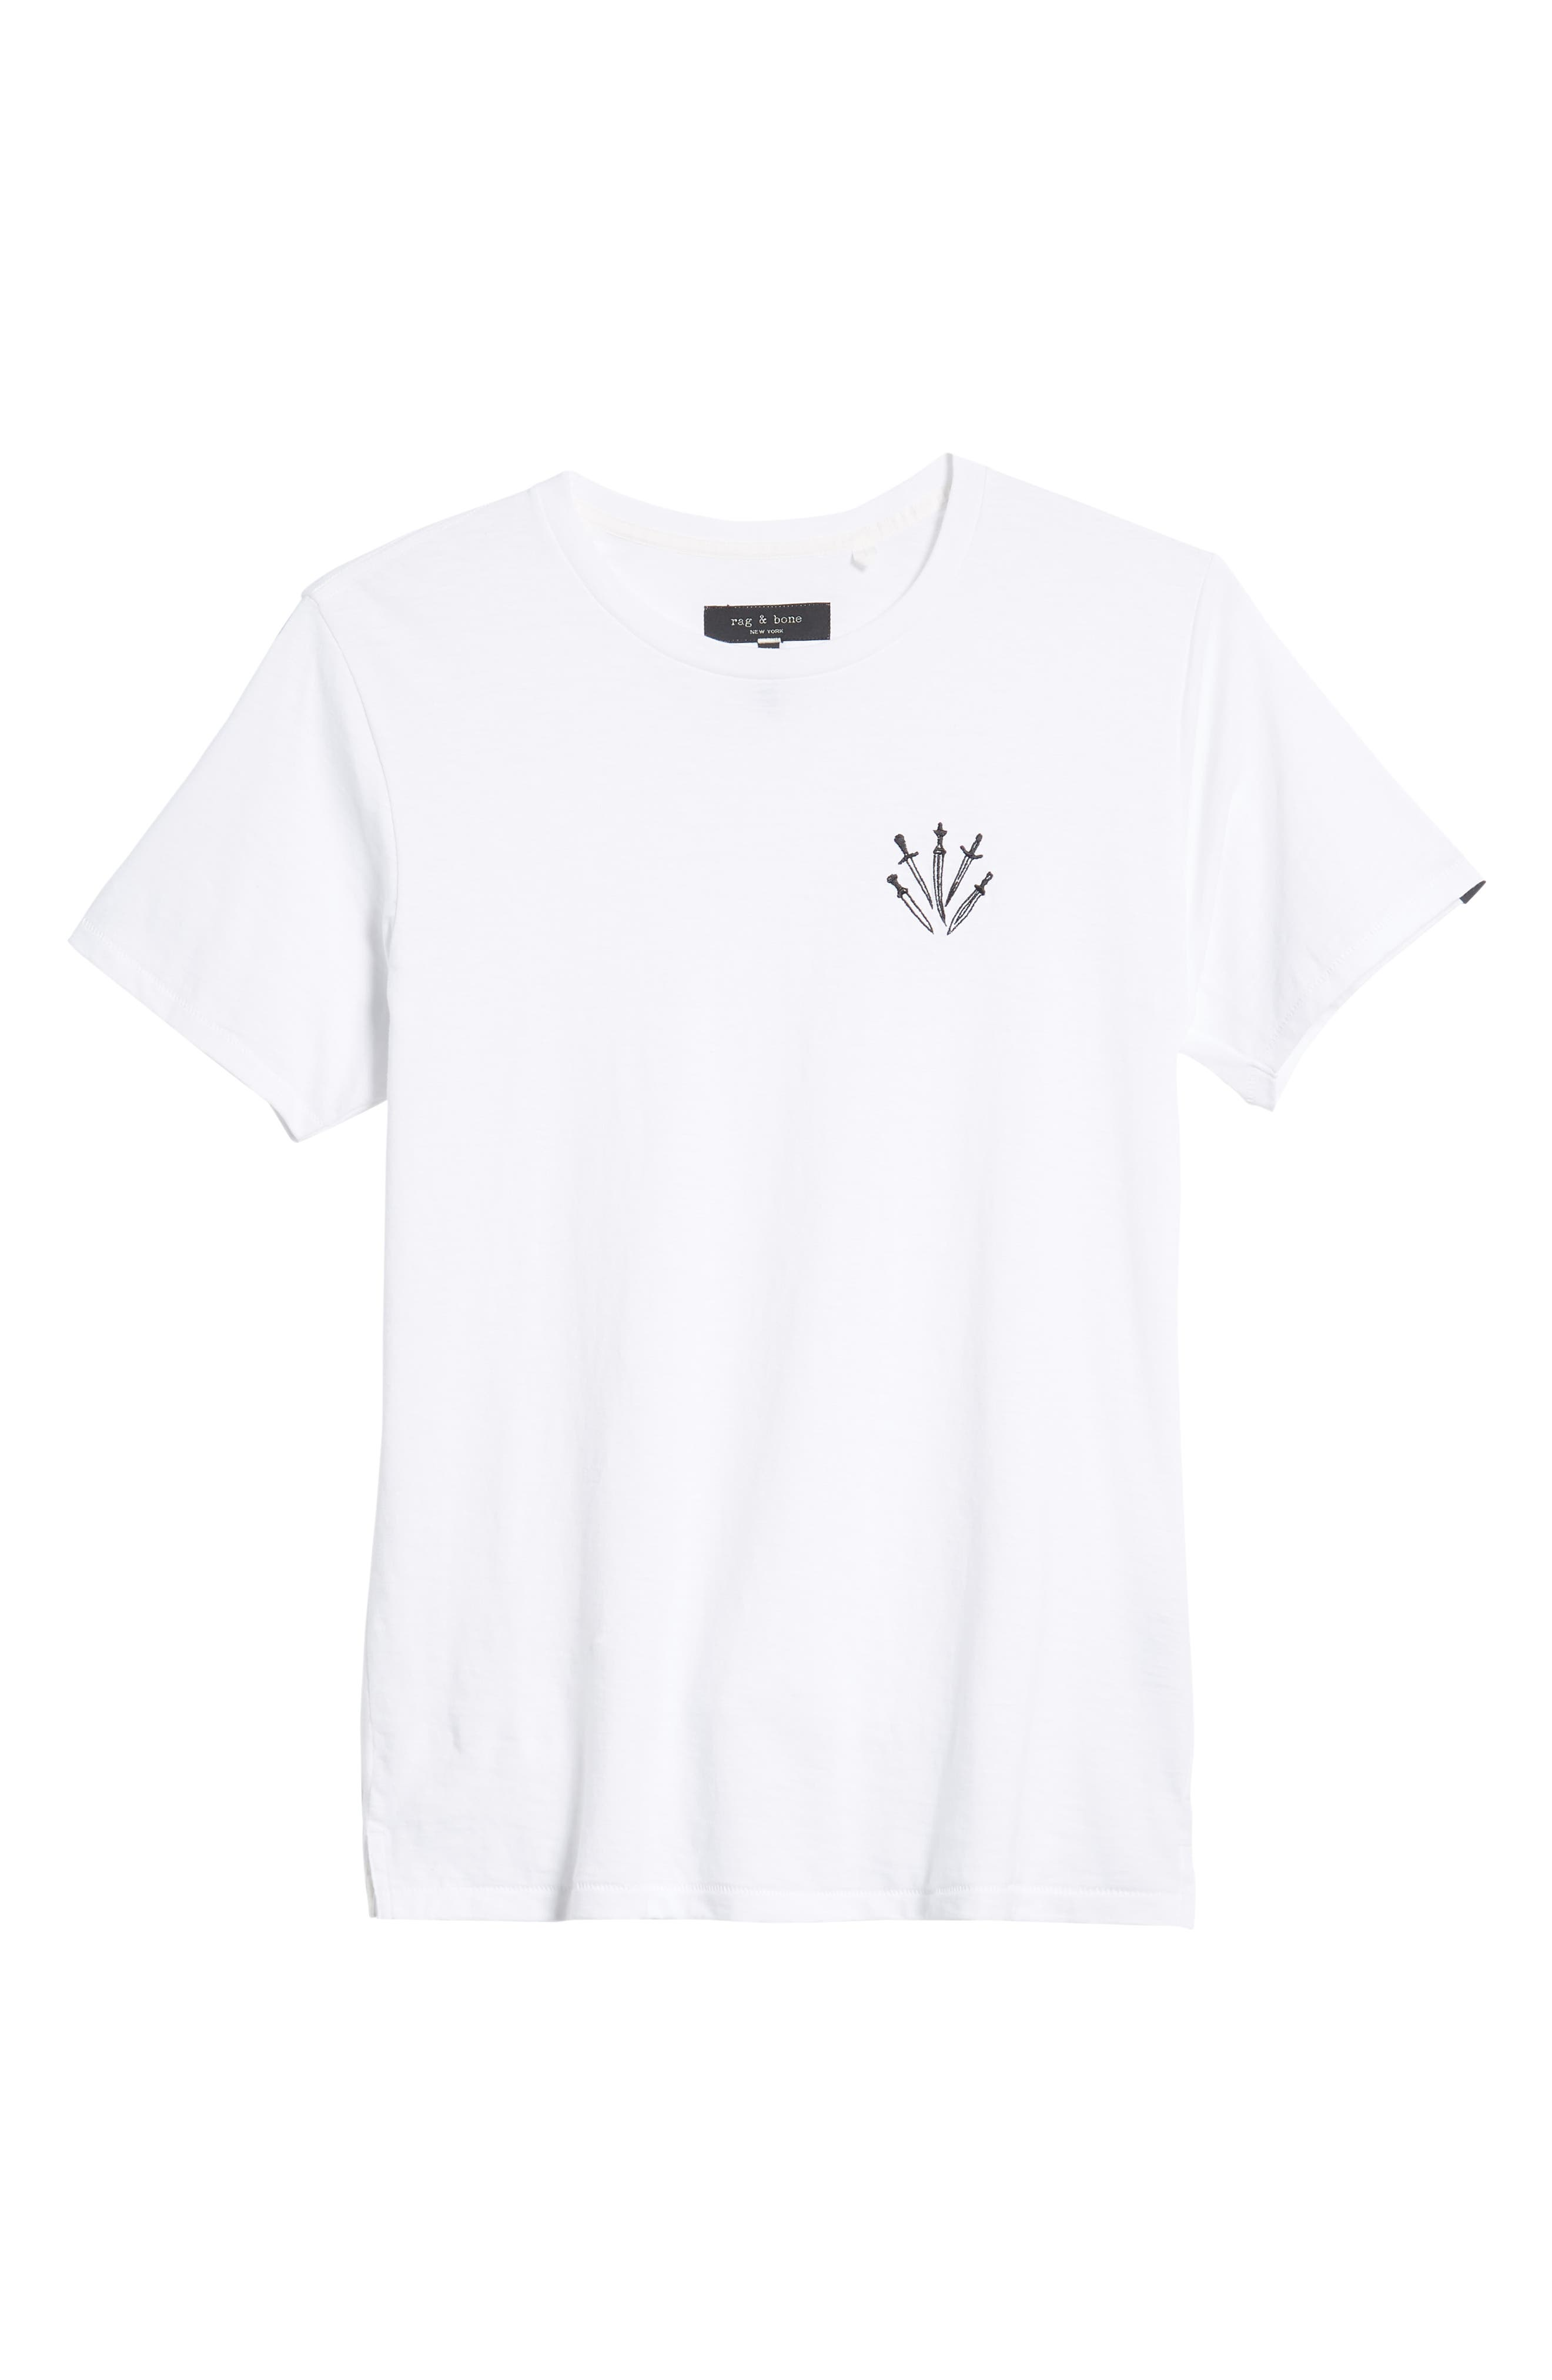 Dagger Embroidered T-Shirt,                             Alternate thumbnail 6, color,                             WHITE